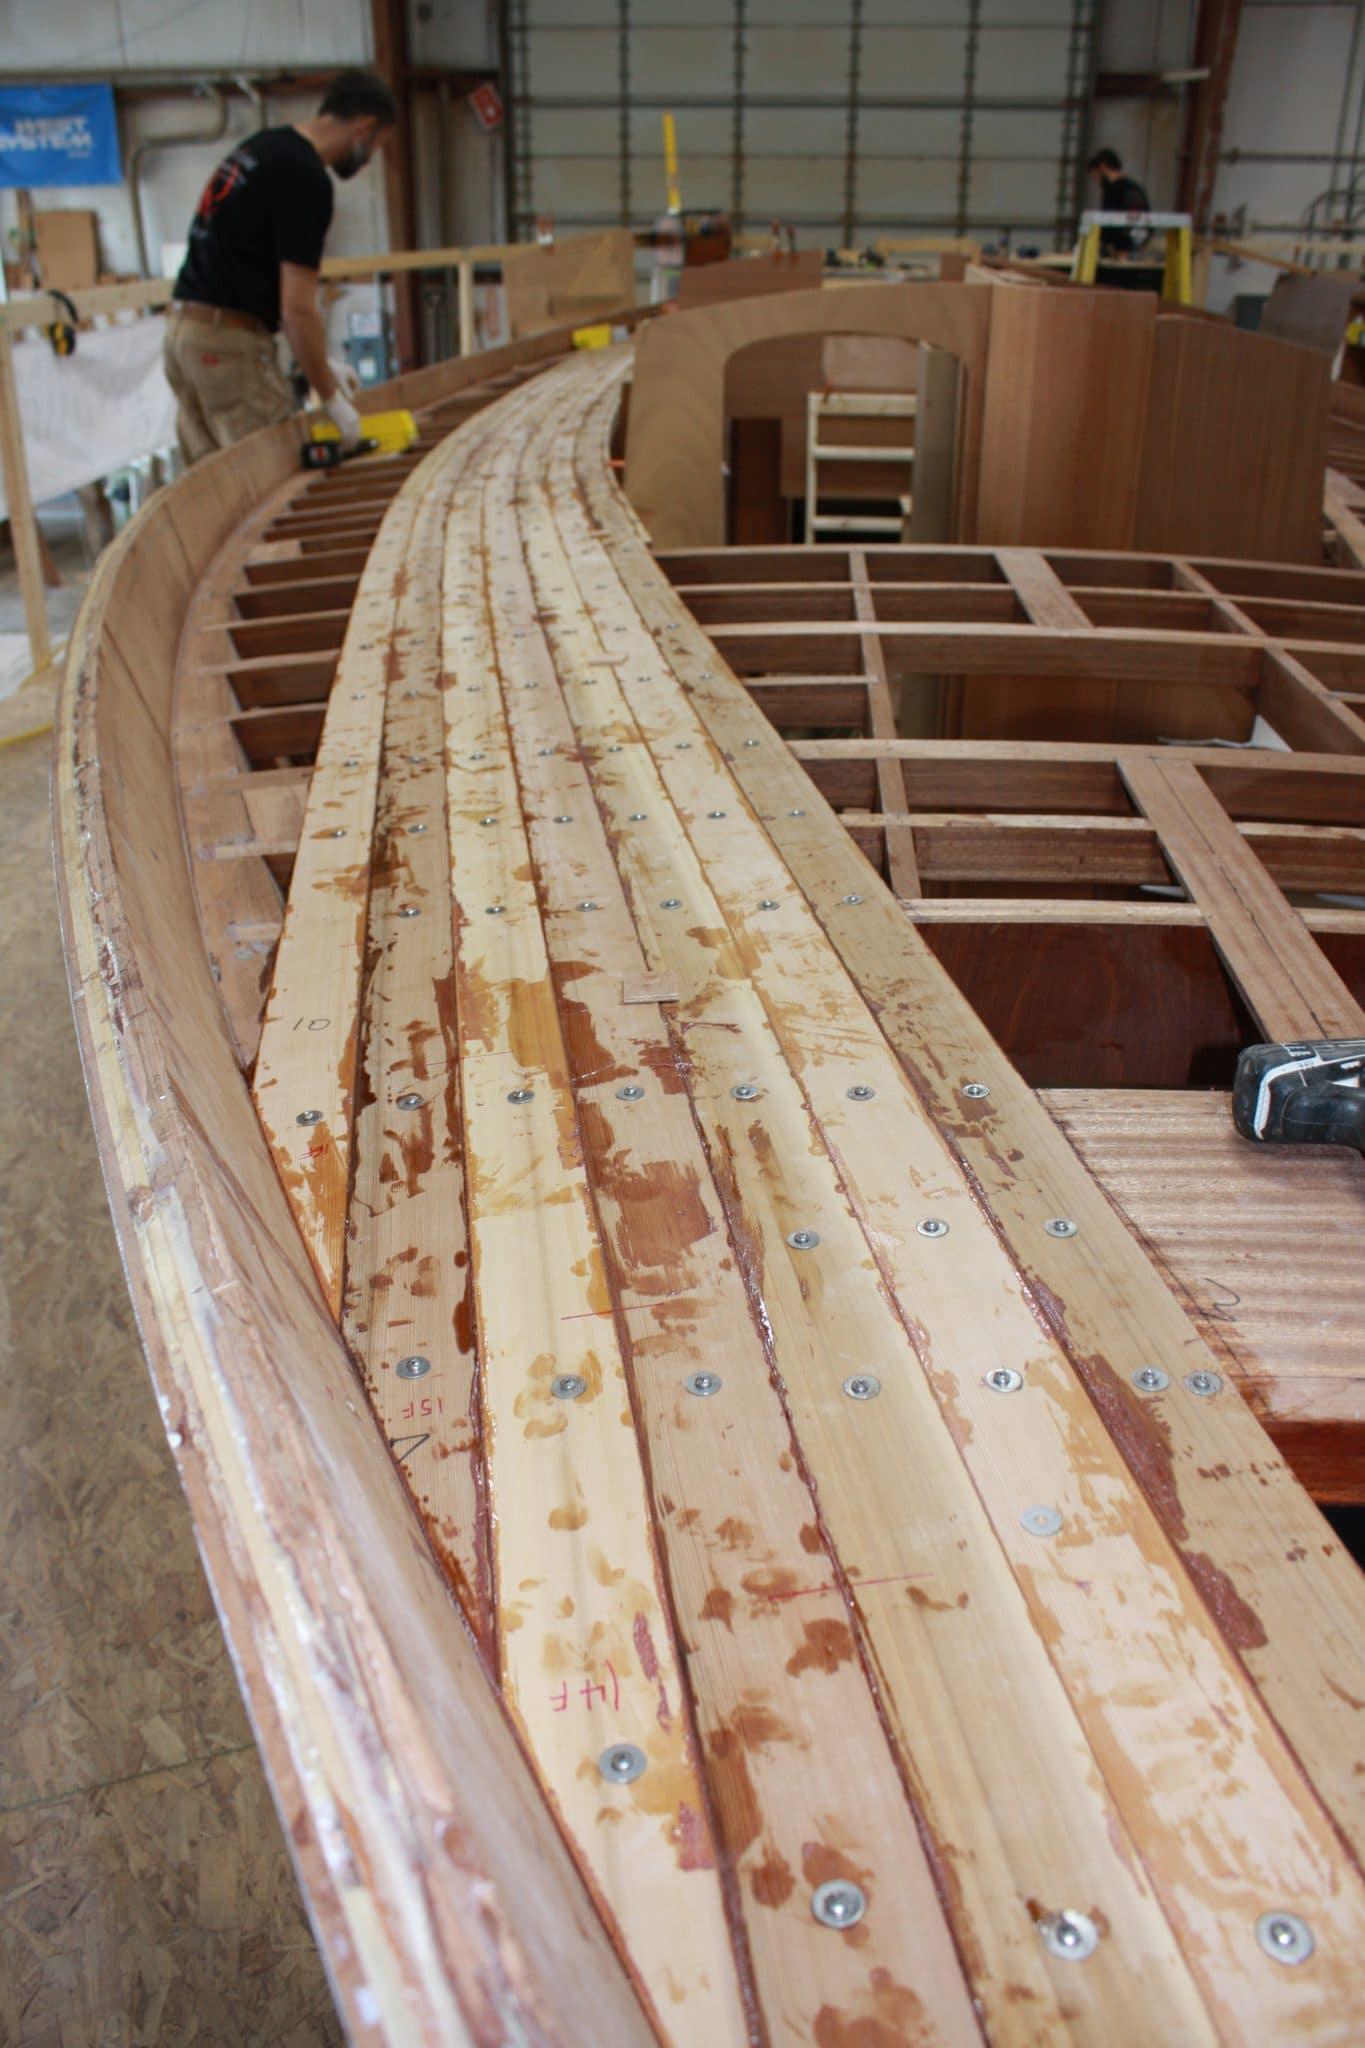 Initial deck planking being installed on Italmas